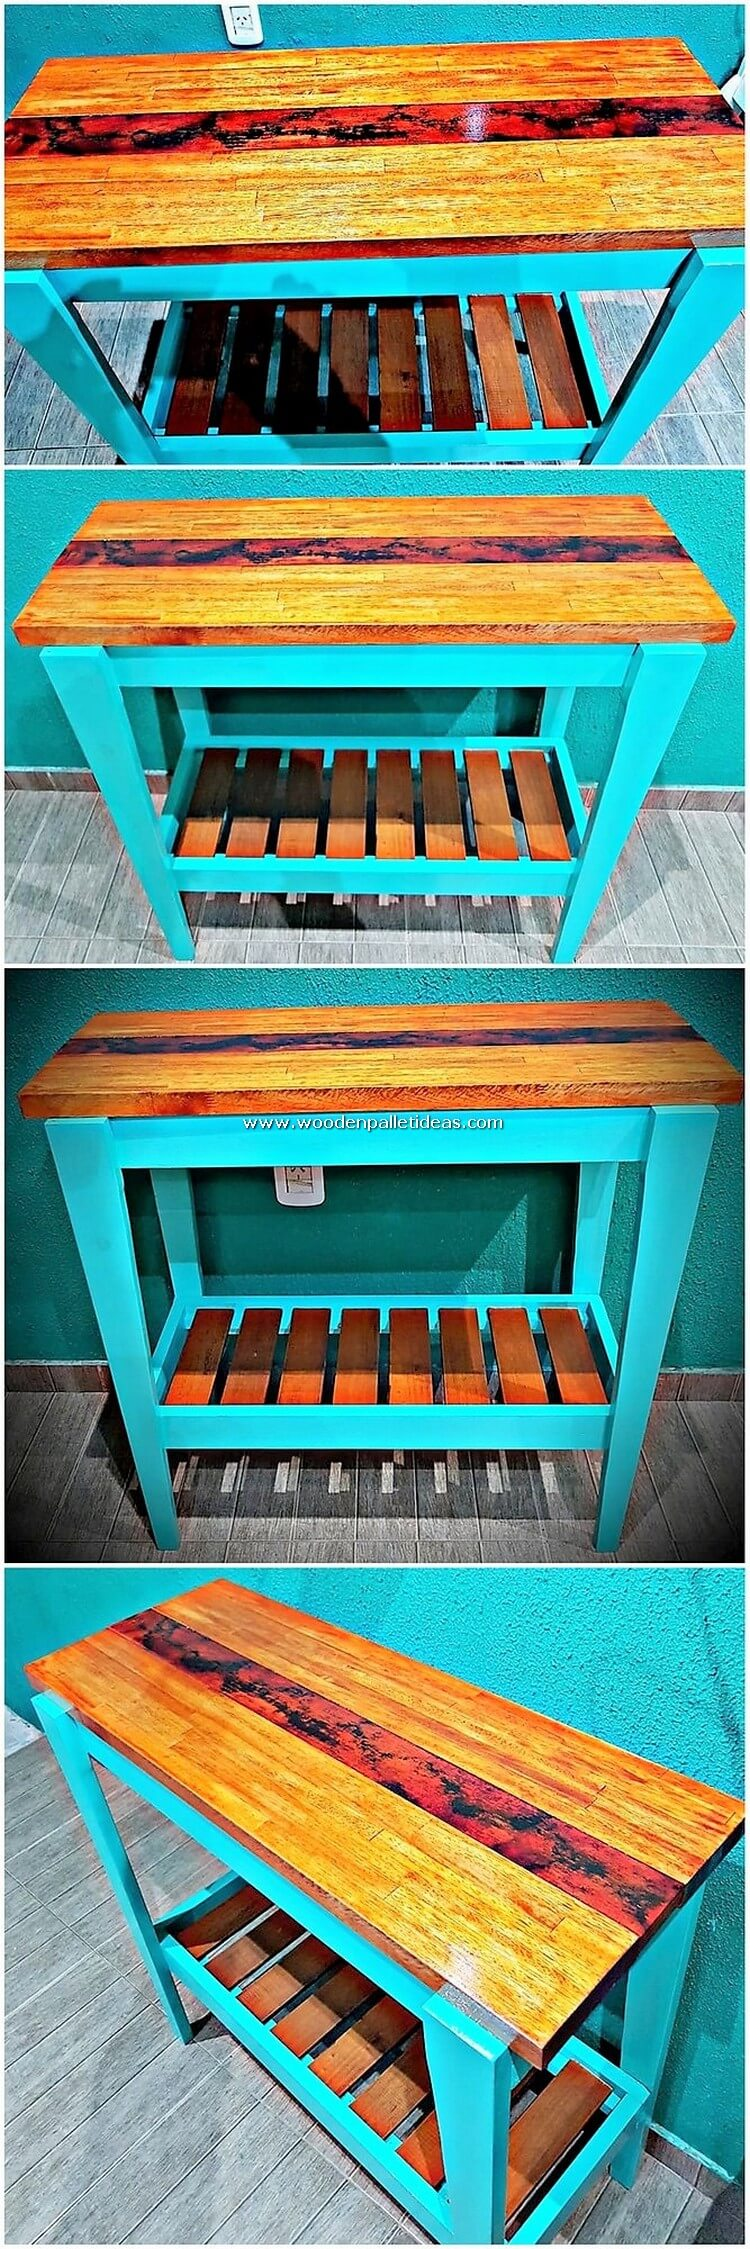 Pallet-Wood-Table-2